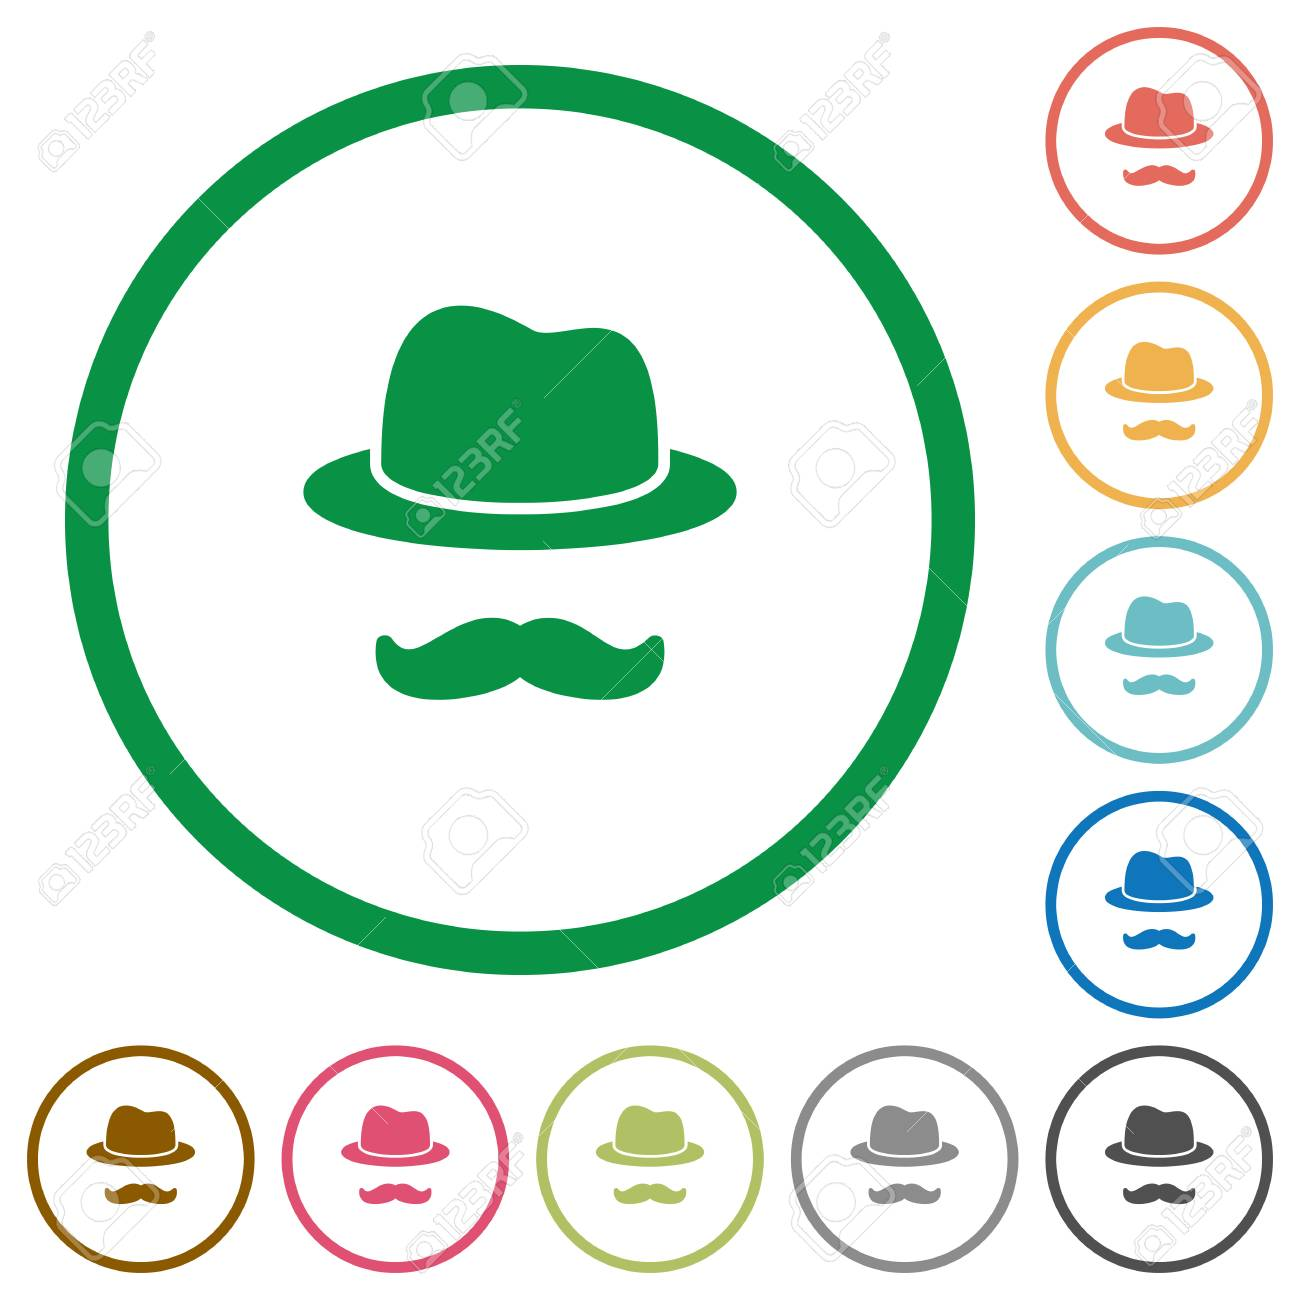 Incognito with mustache flat color icons in round outlines on white background - 111945782